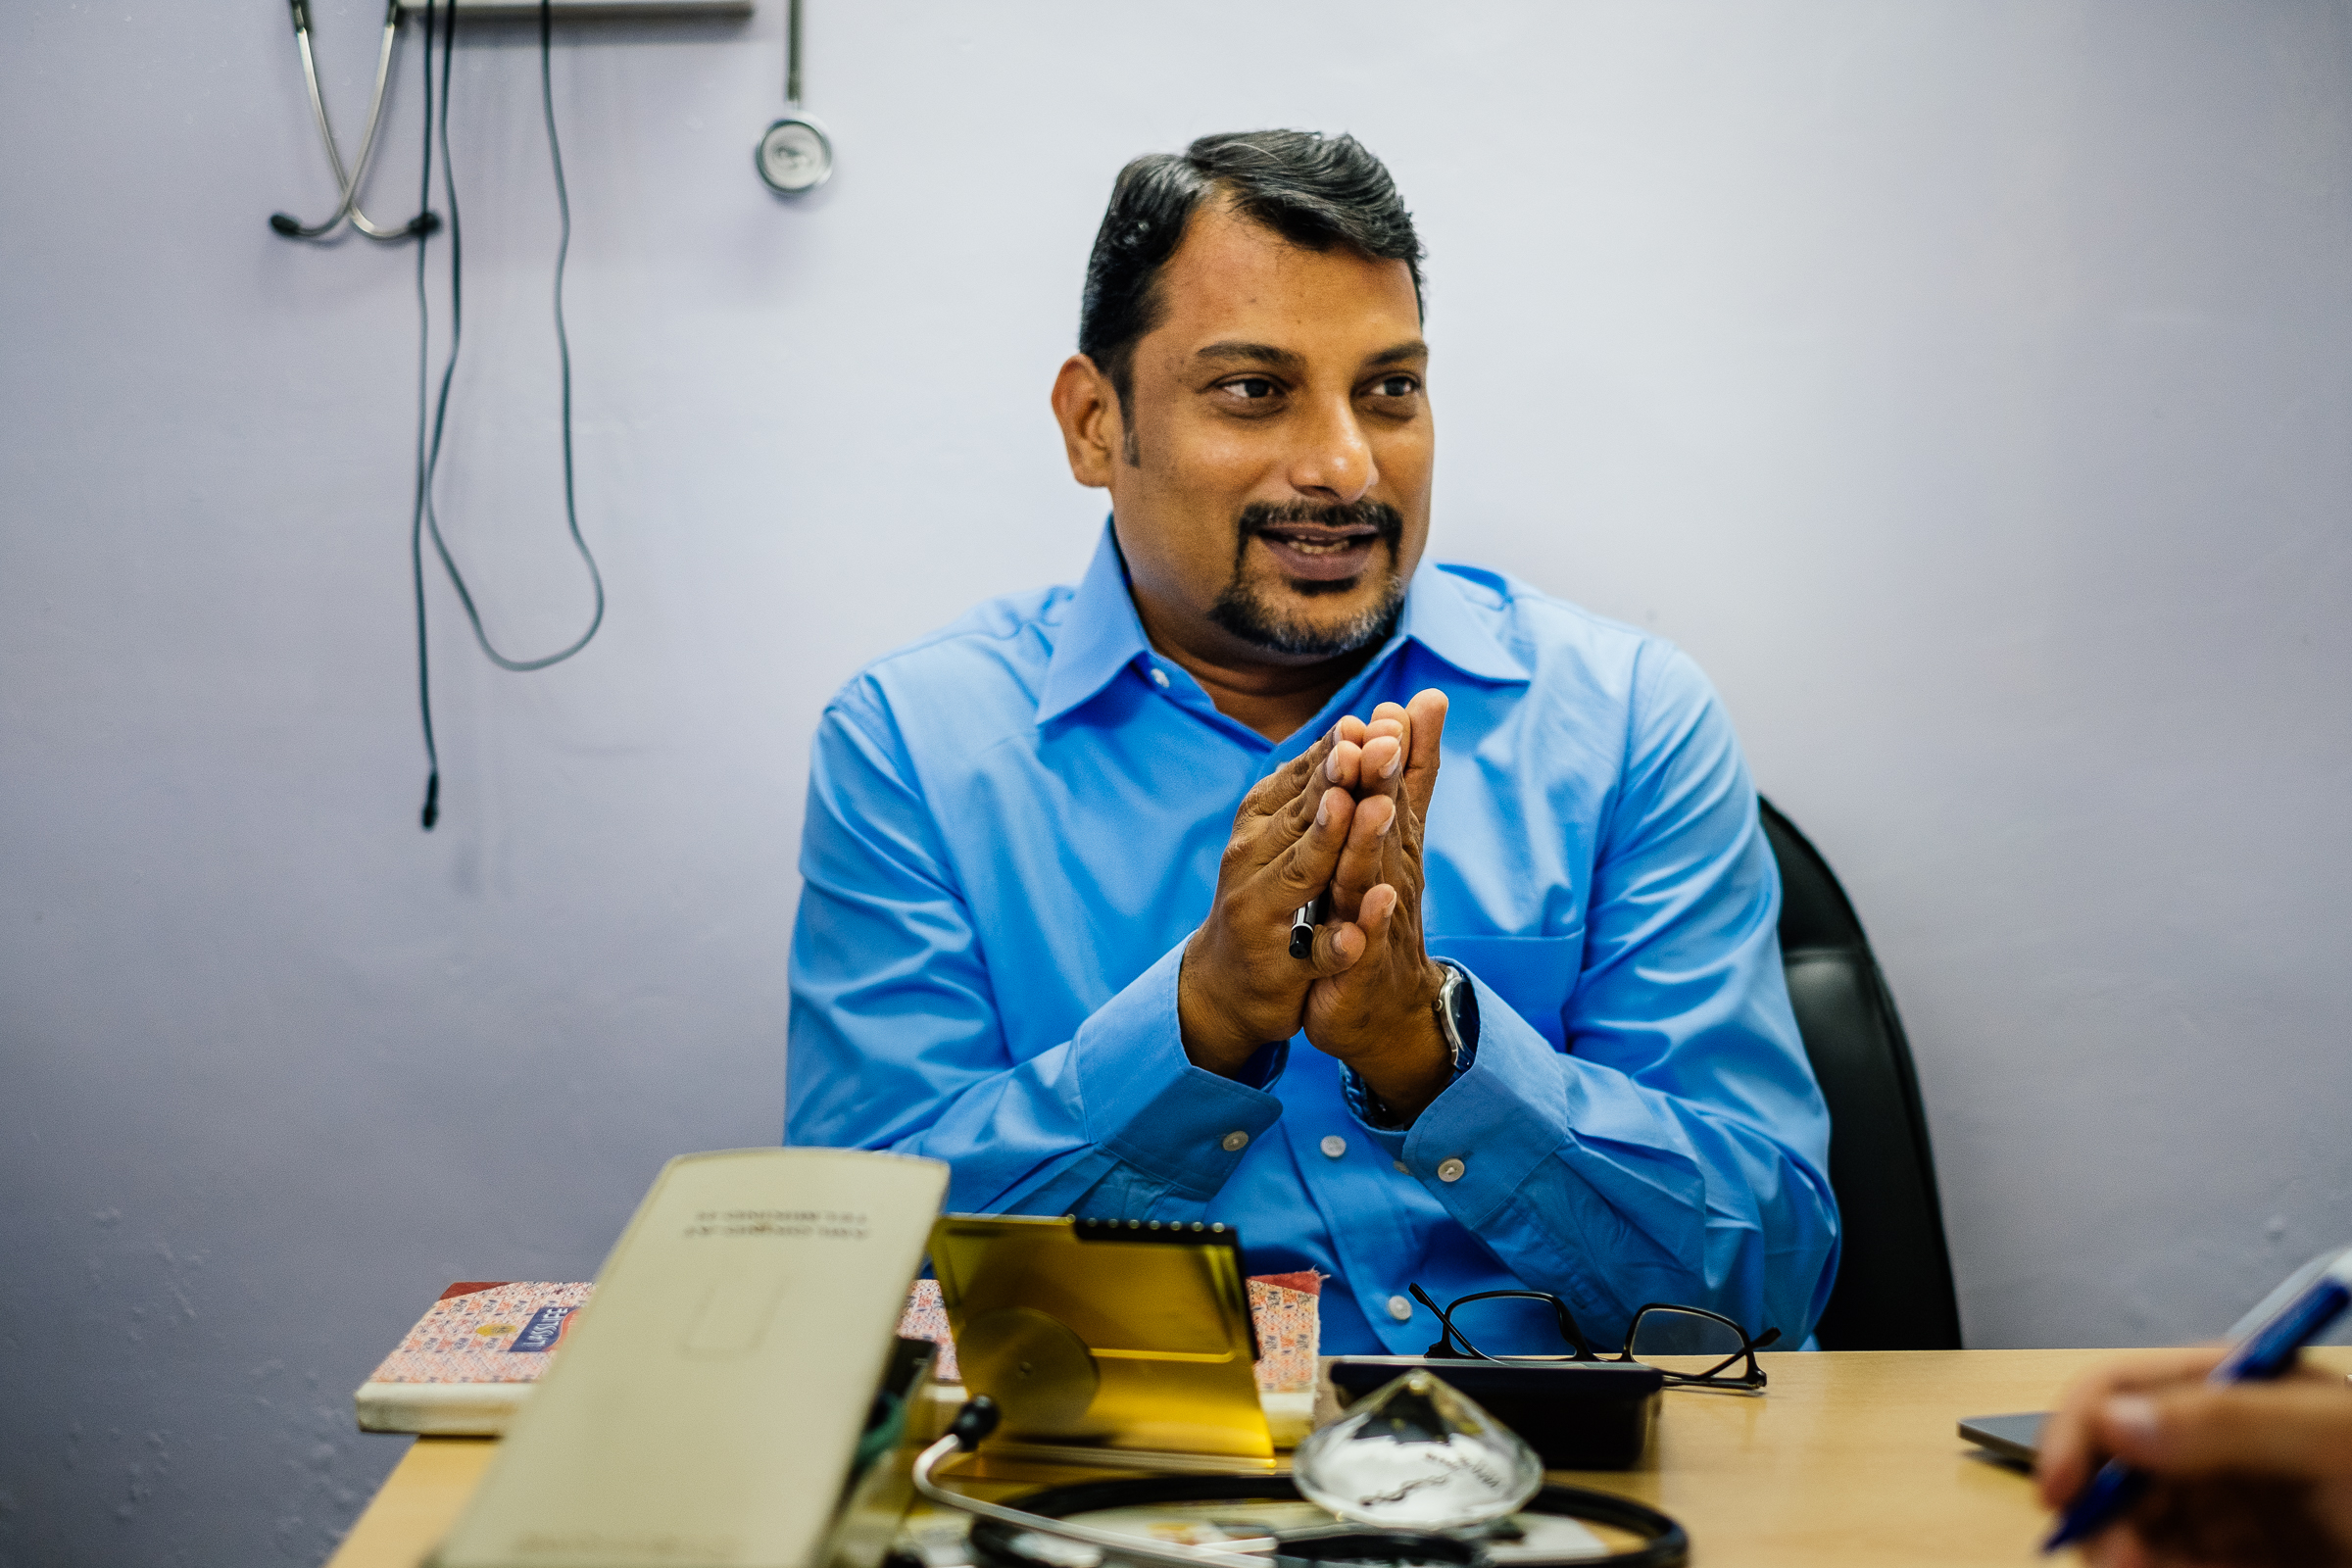 We spoke to Dr Neeraj, a 44 year old GP in Bangalore who owns his private clinic. Here are some highlights from our session.